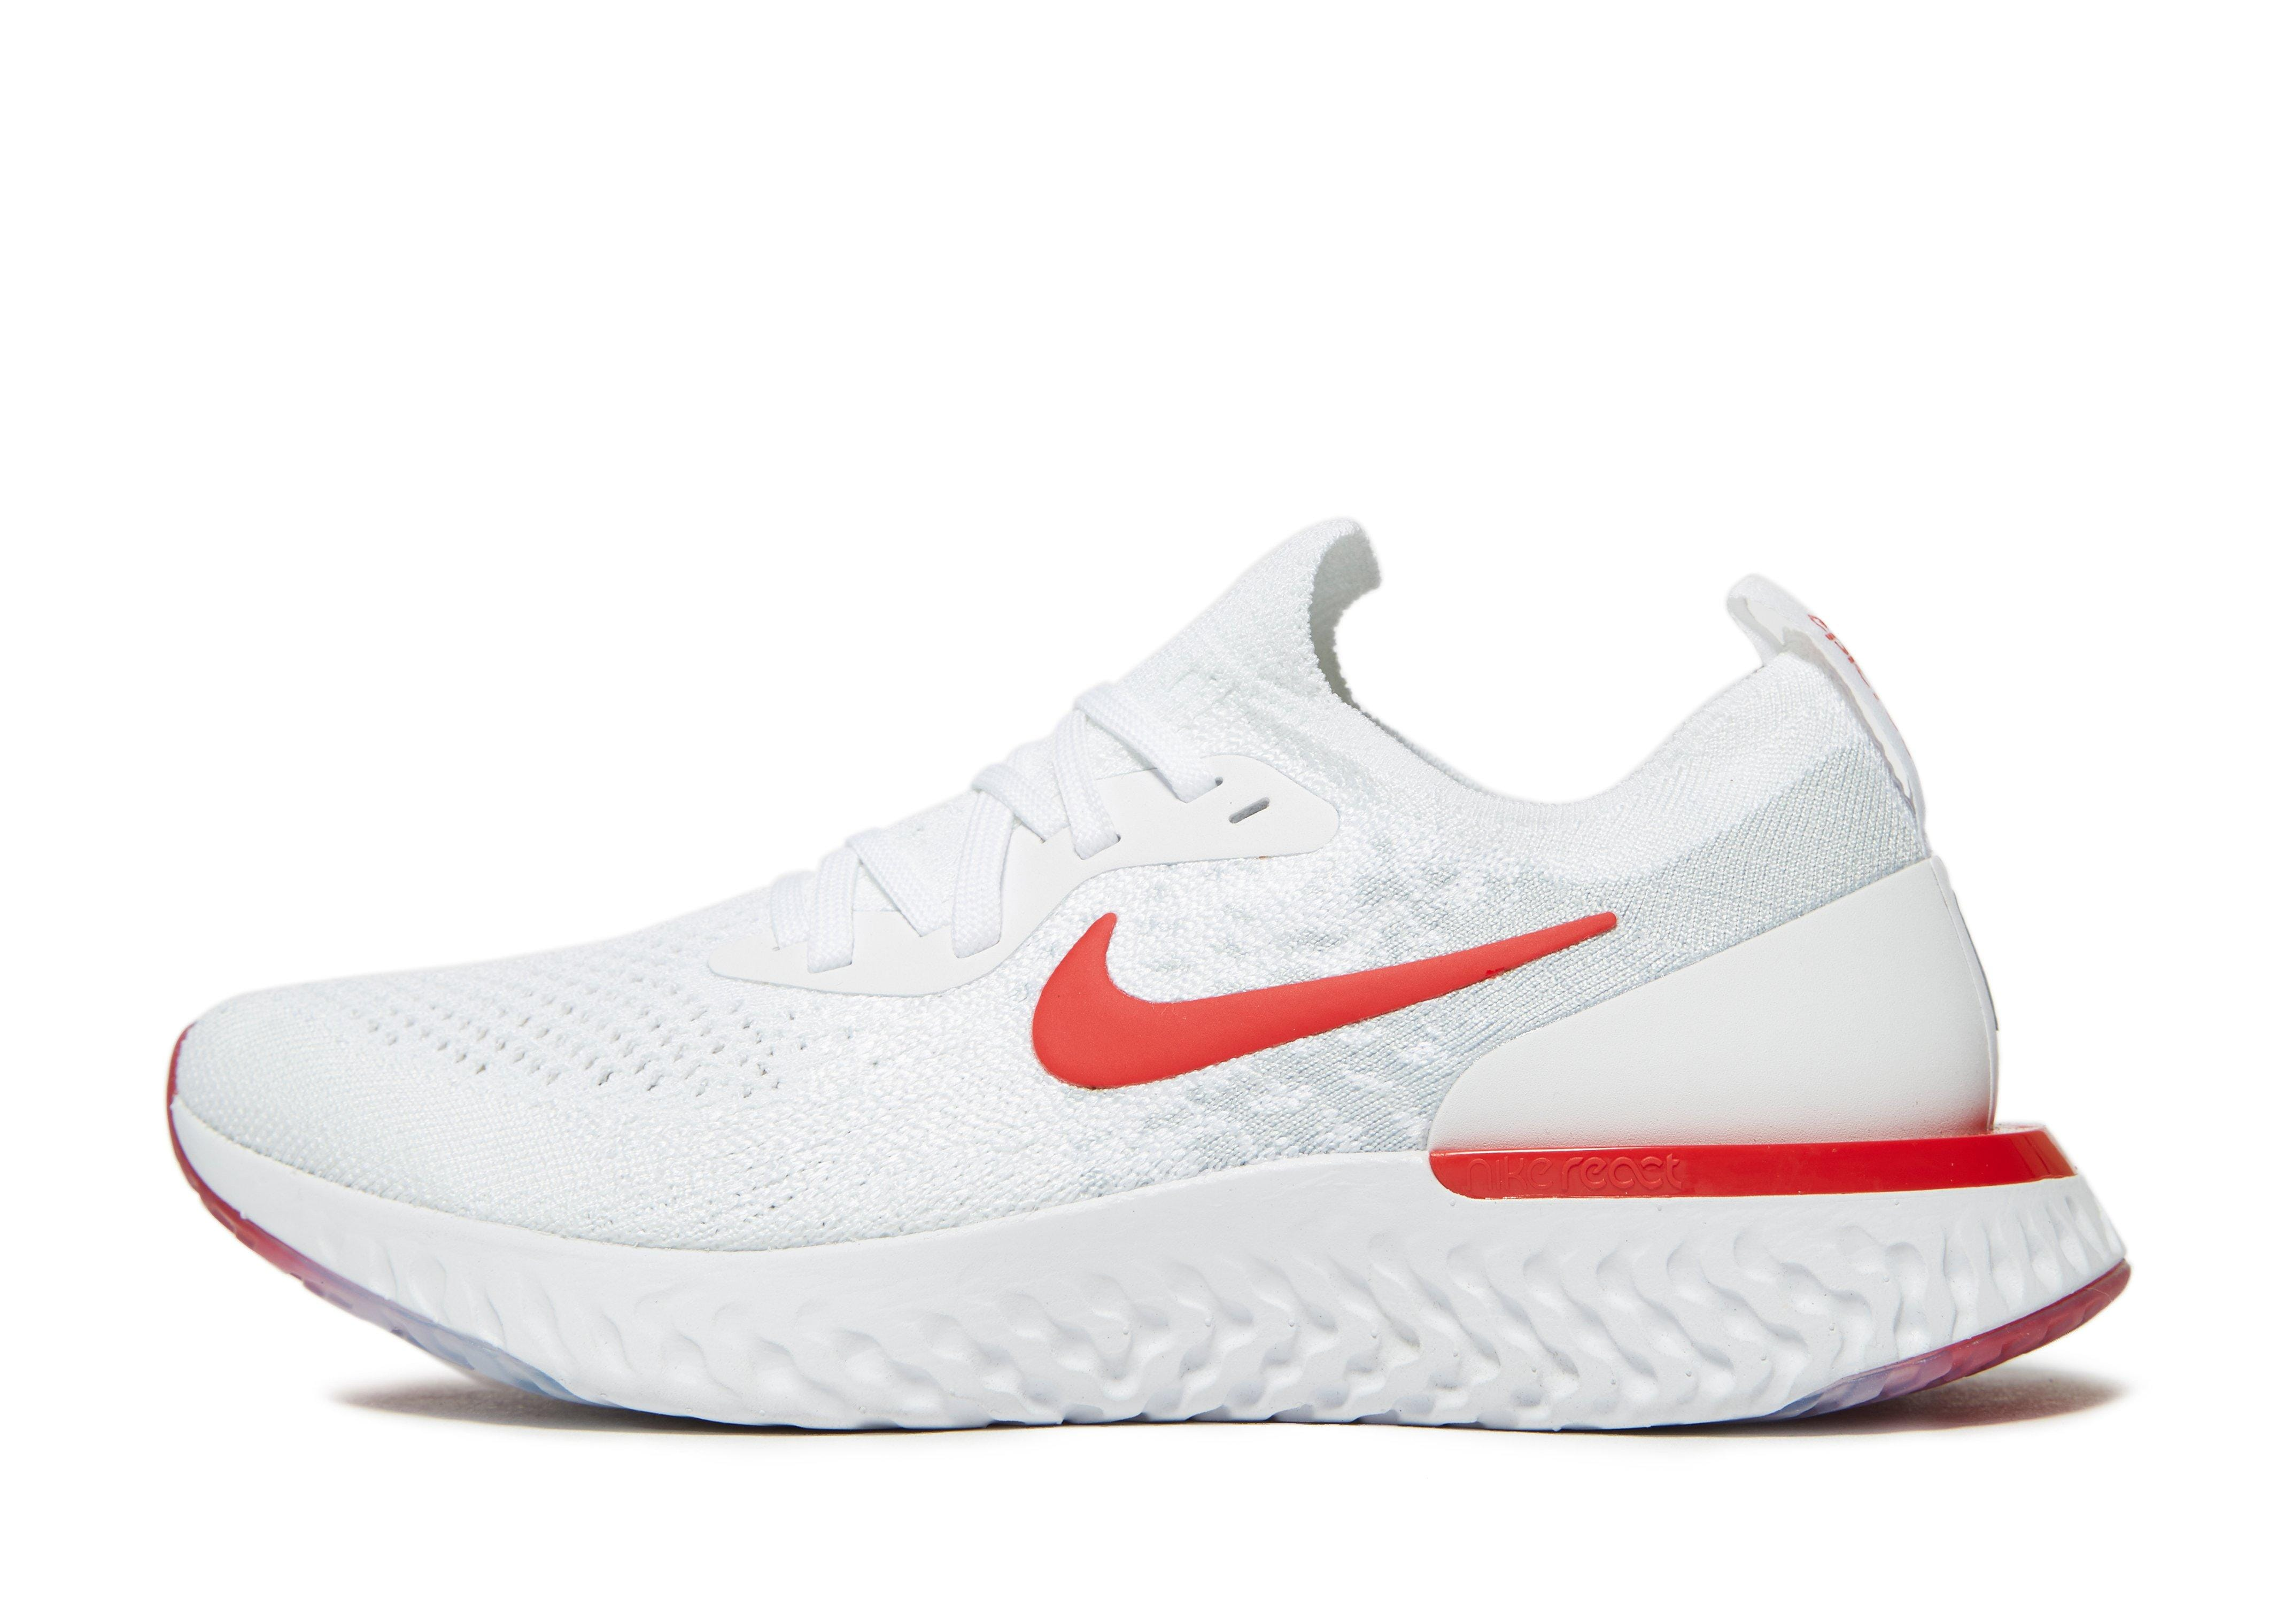 nike shoes sport kids liberec mapa do brasil 936039